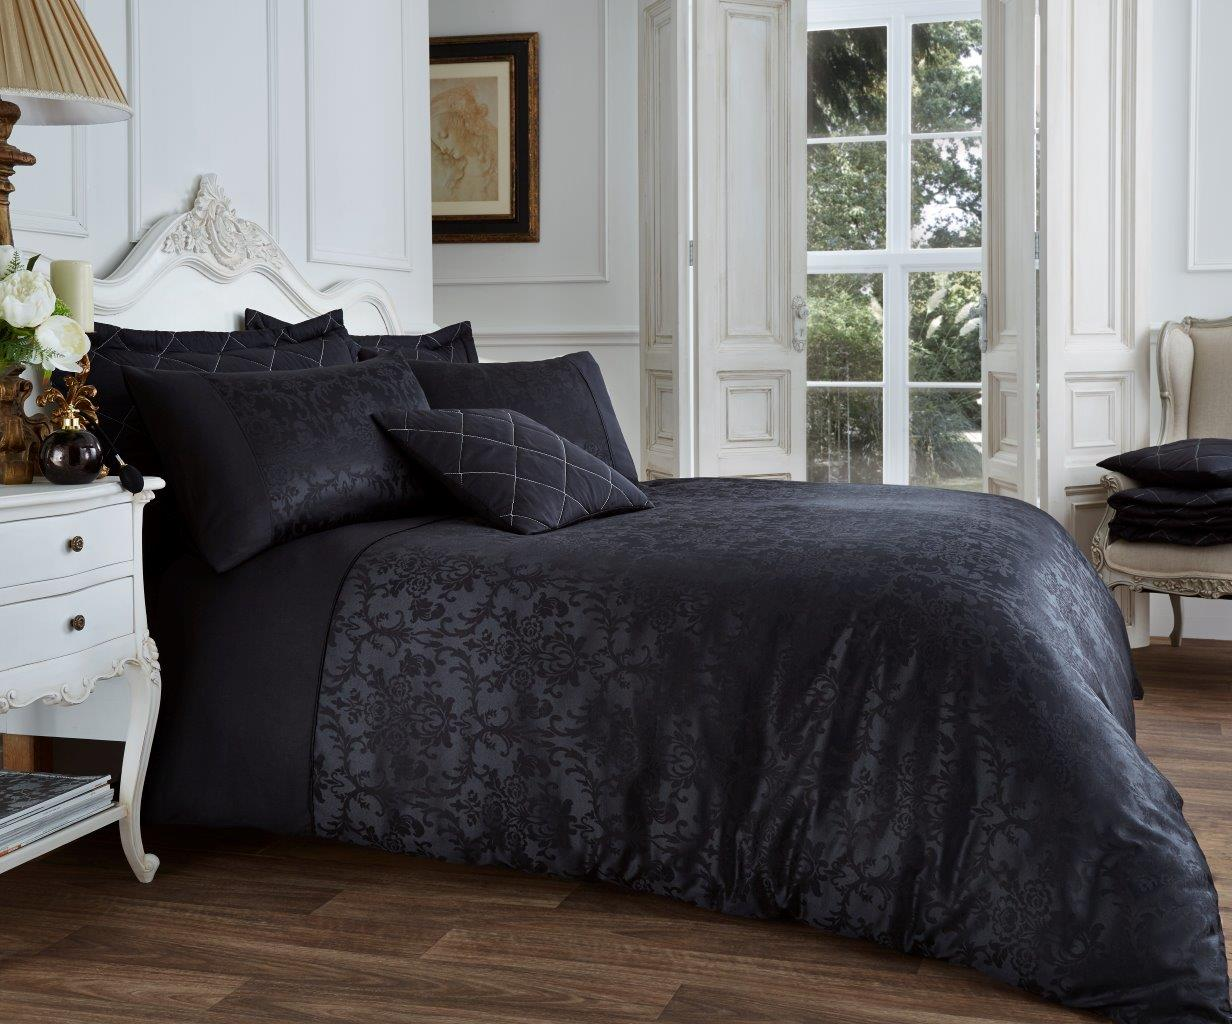 Vincenza Jacquard Luxurious Duvet Cover Set